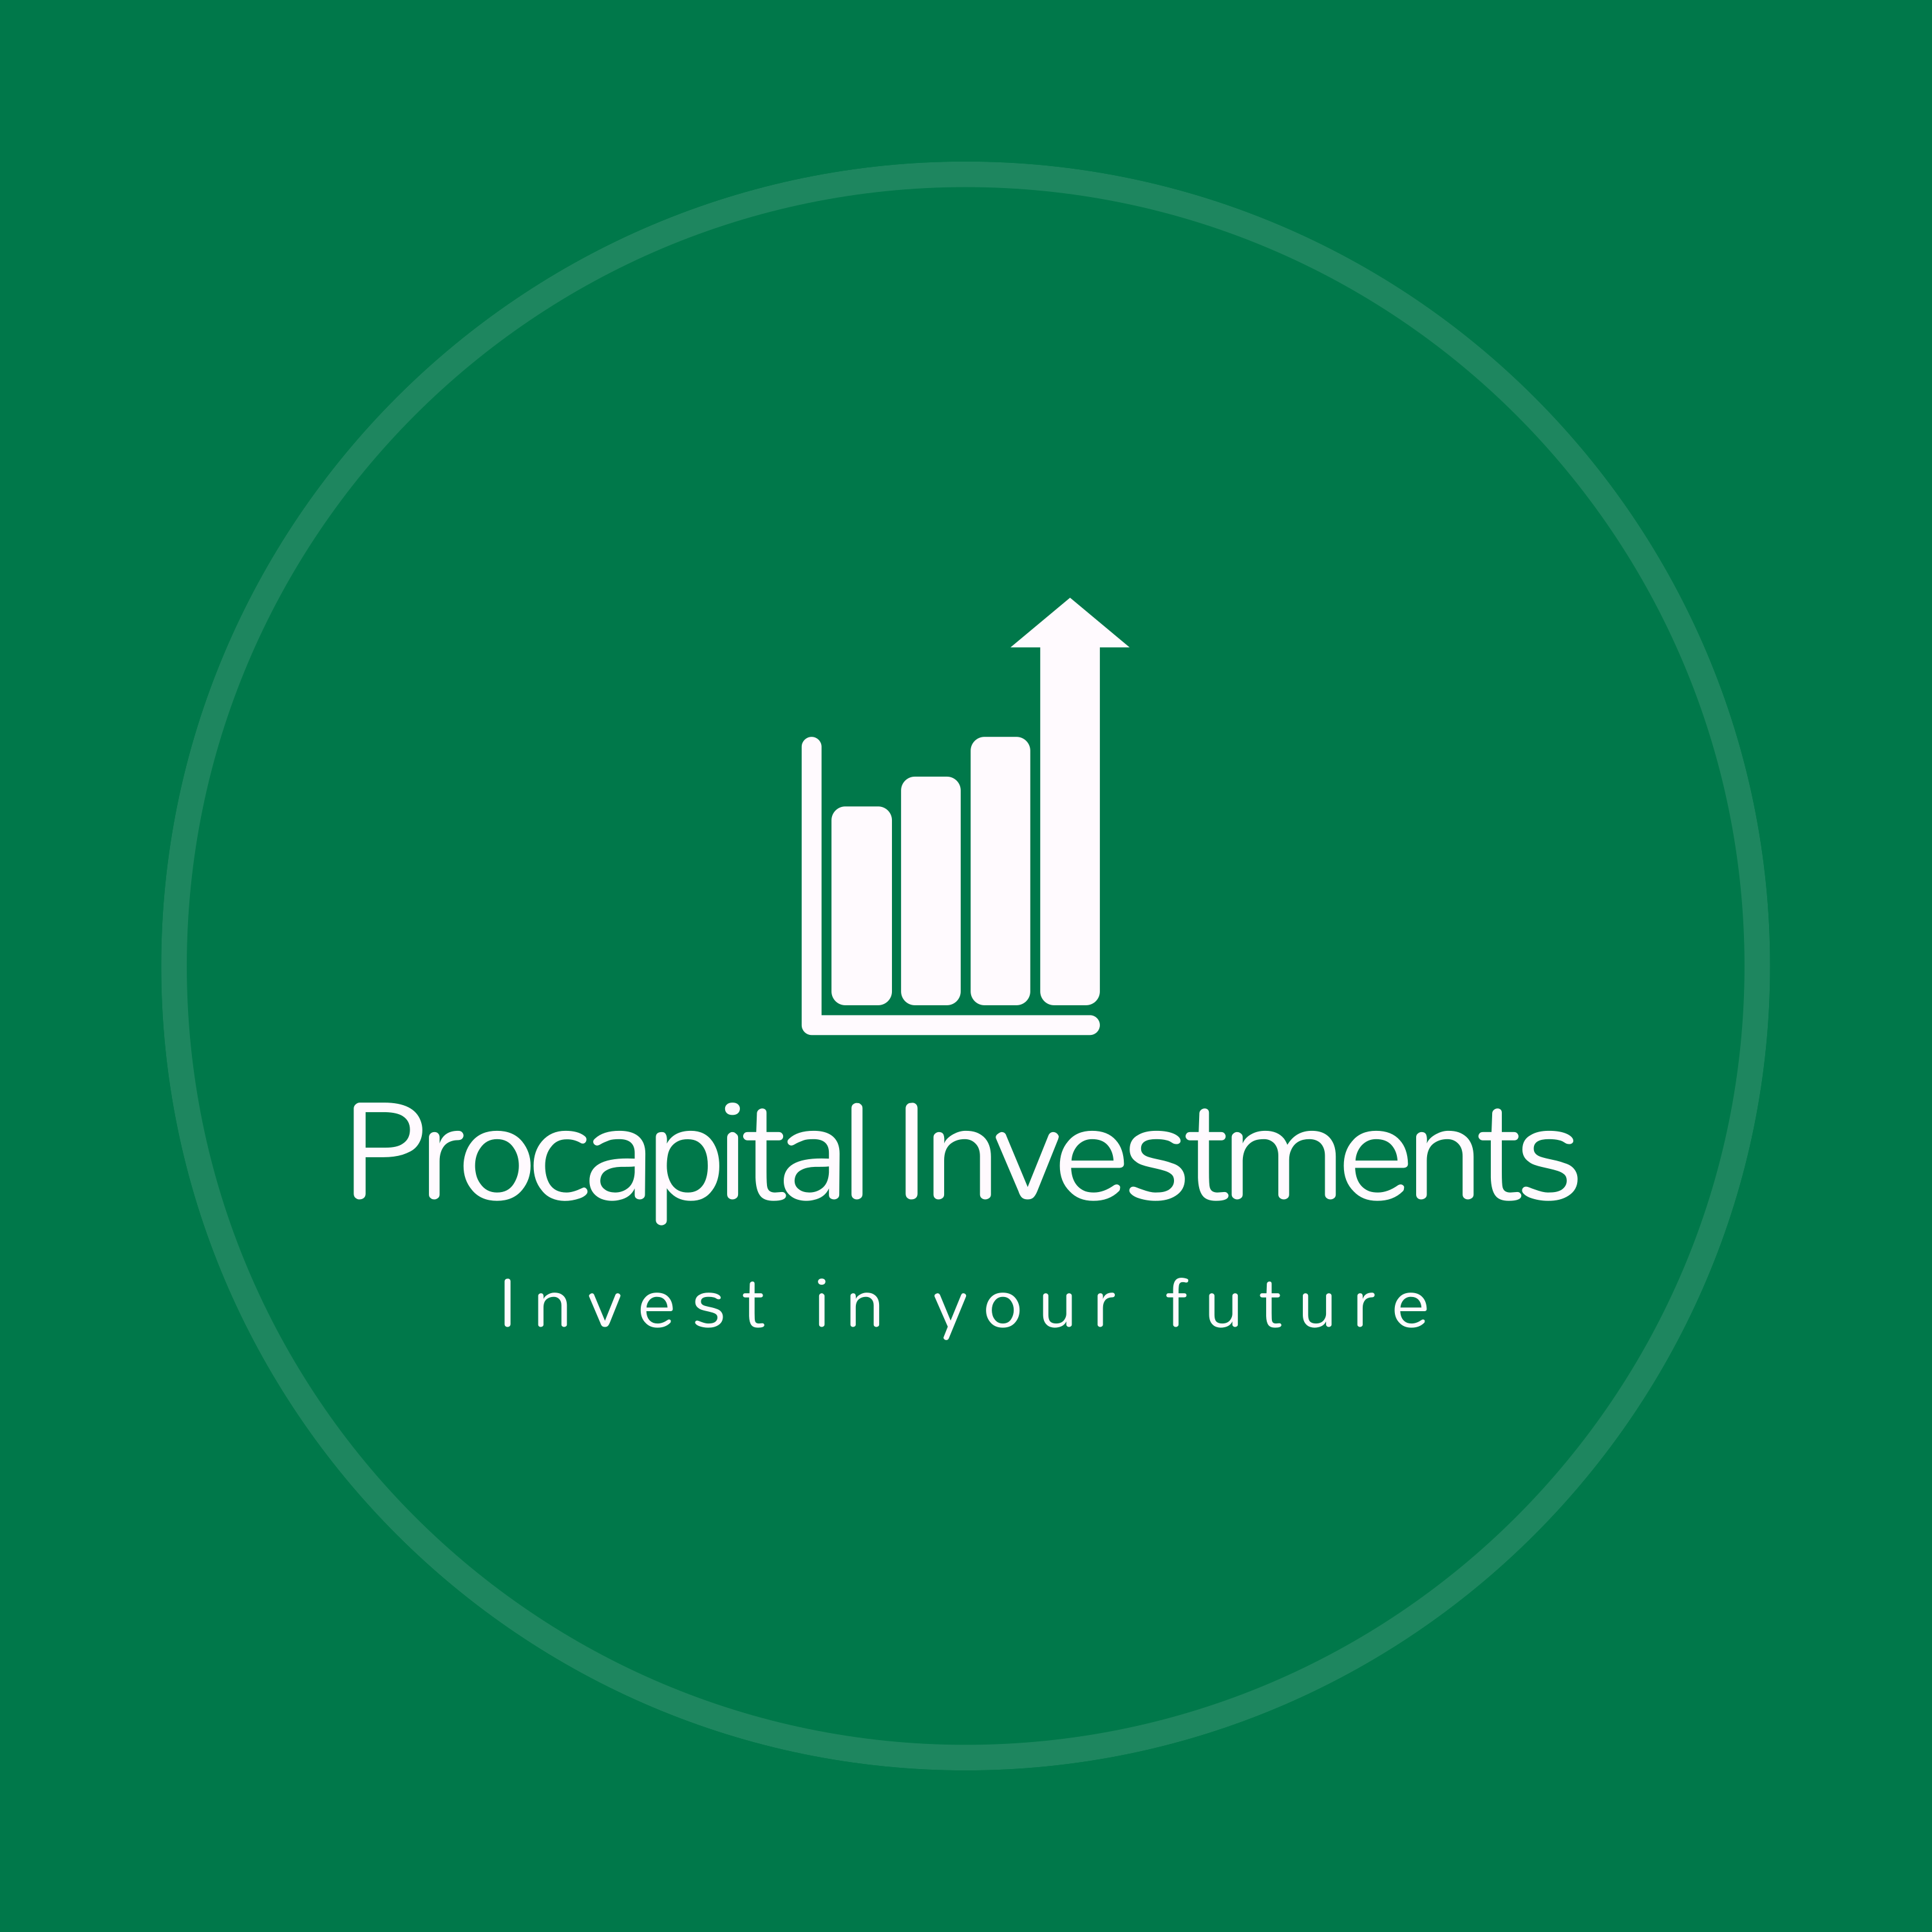 Procapital Investments